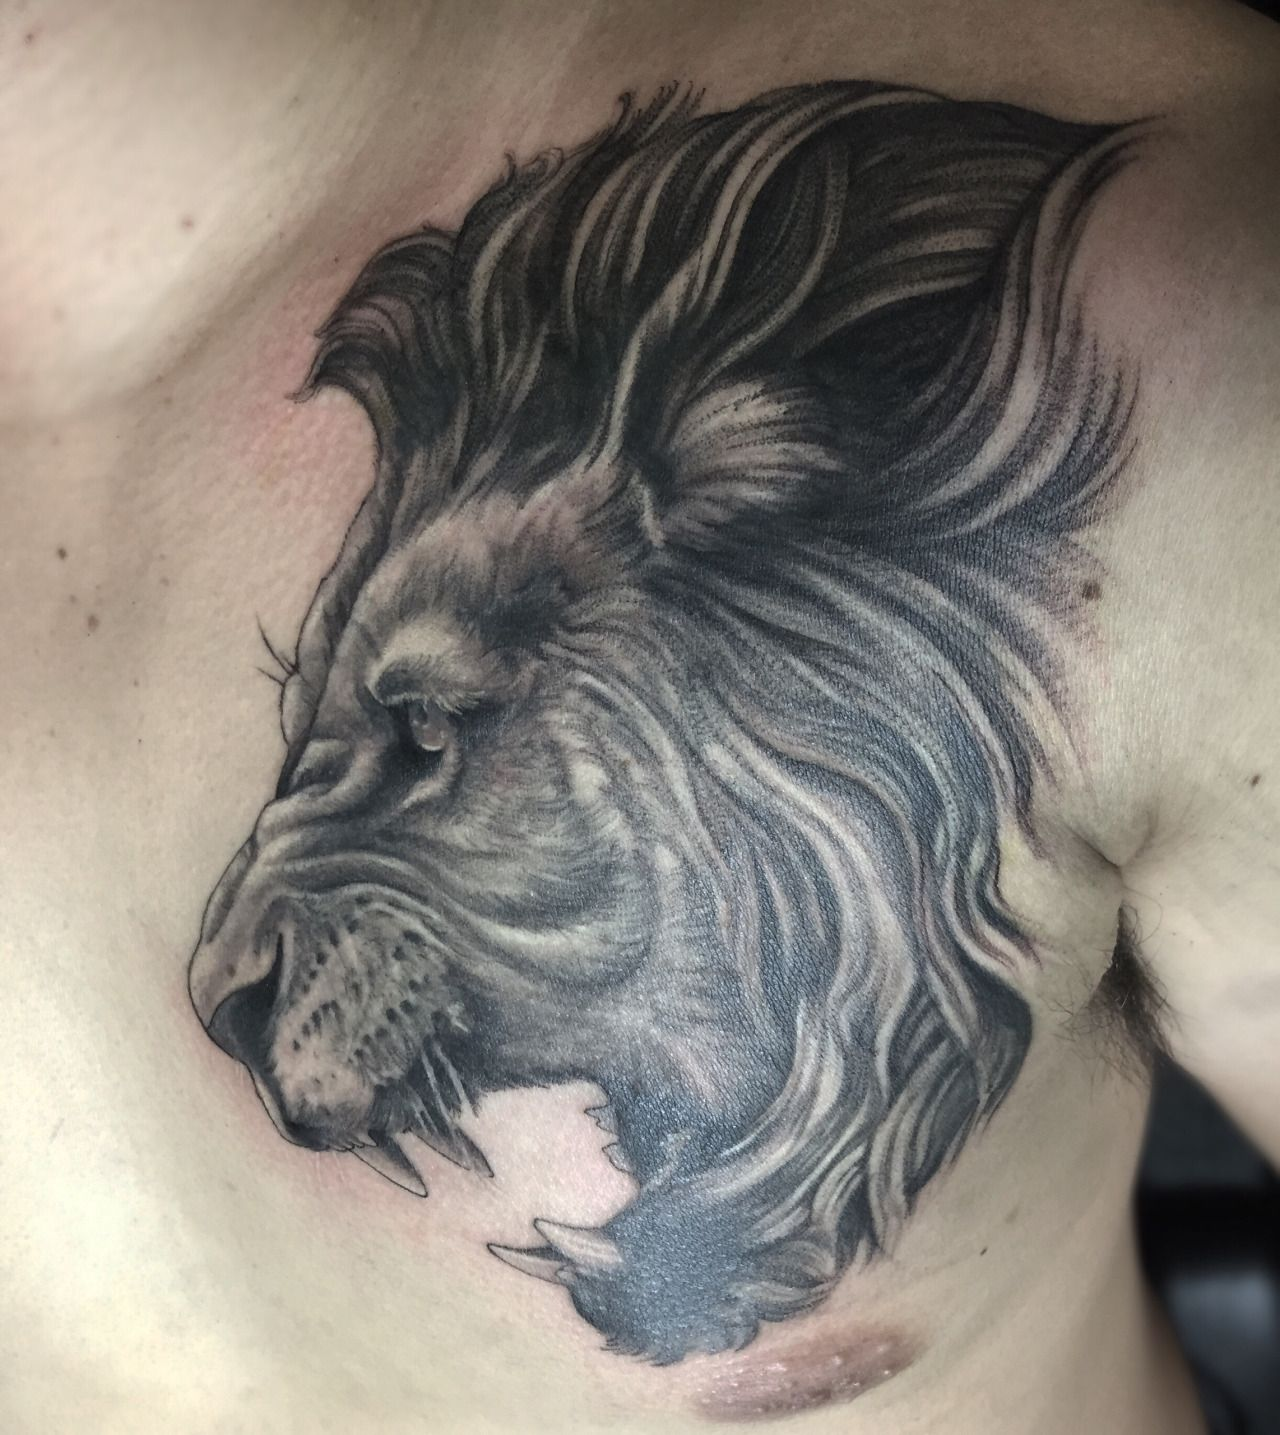 Heart Of A Lion Tattoo Done By Eddie Lee At Ink Shop Tattoo In